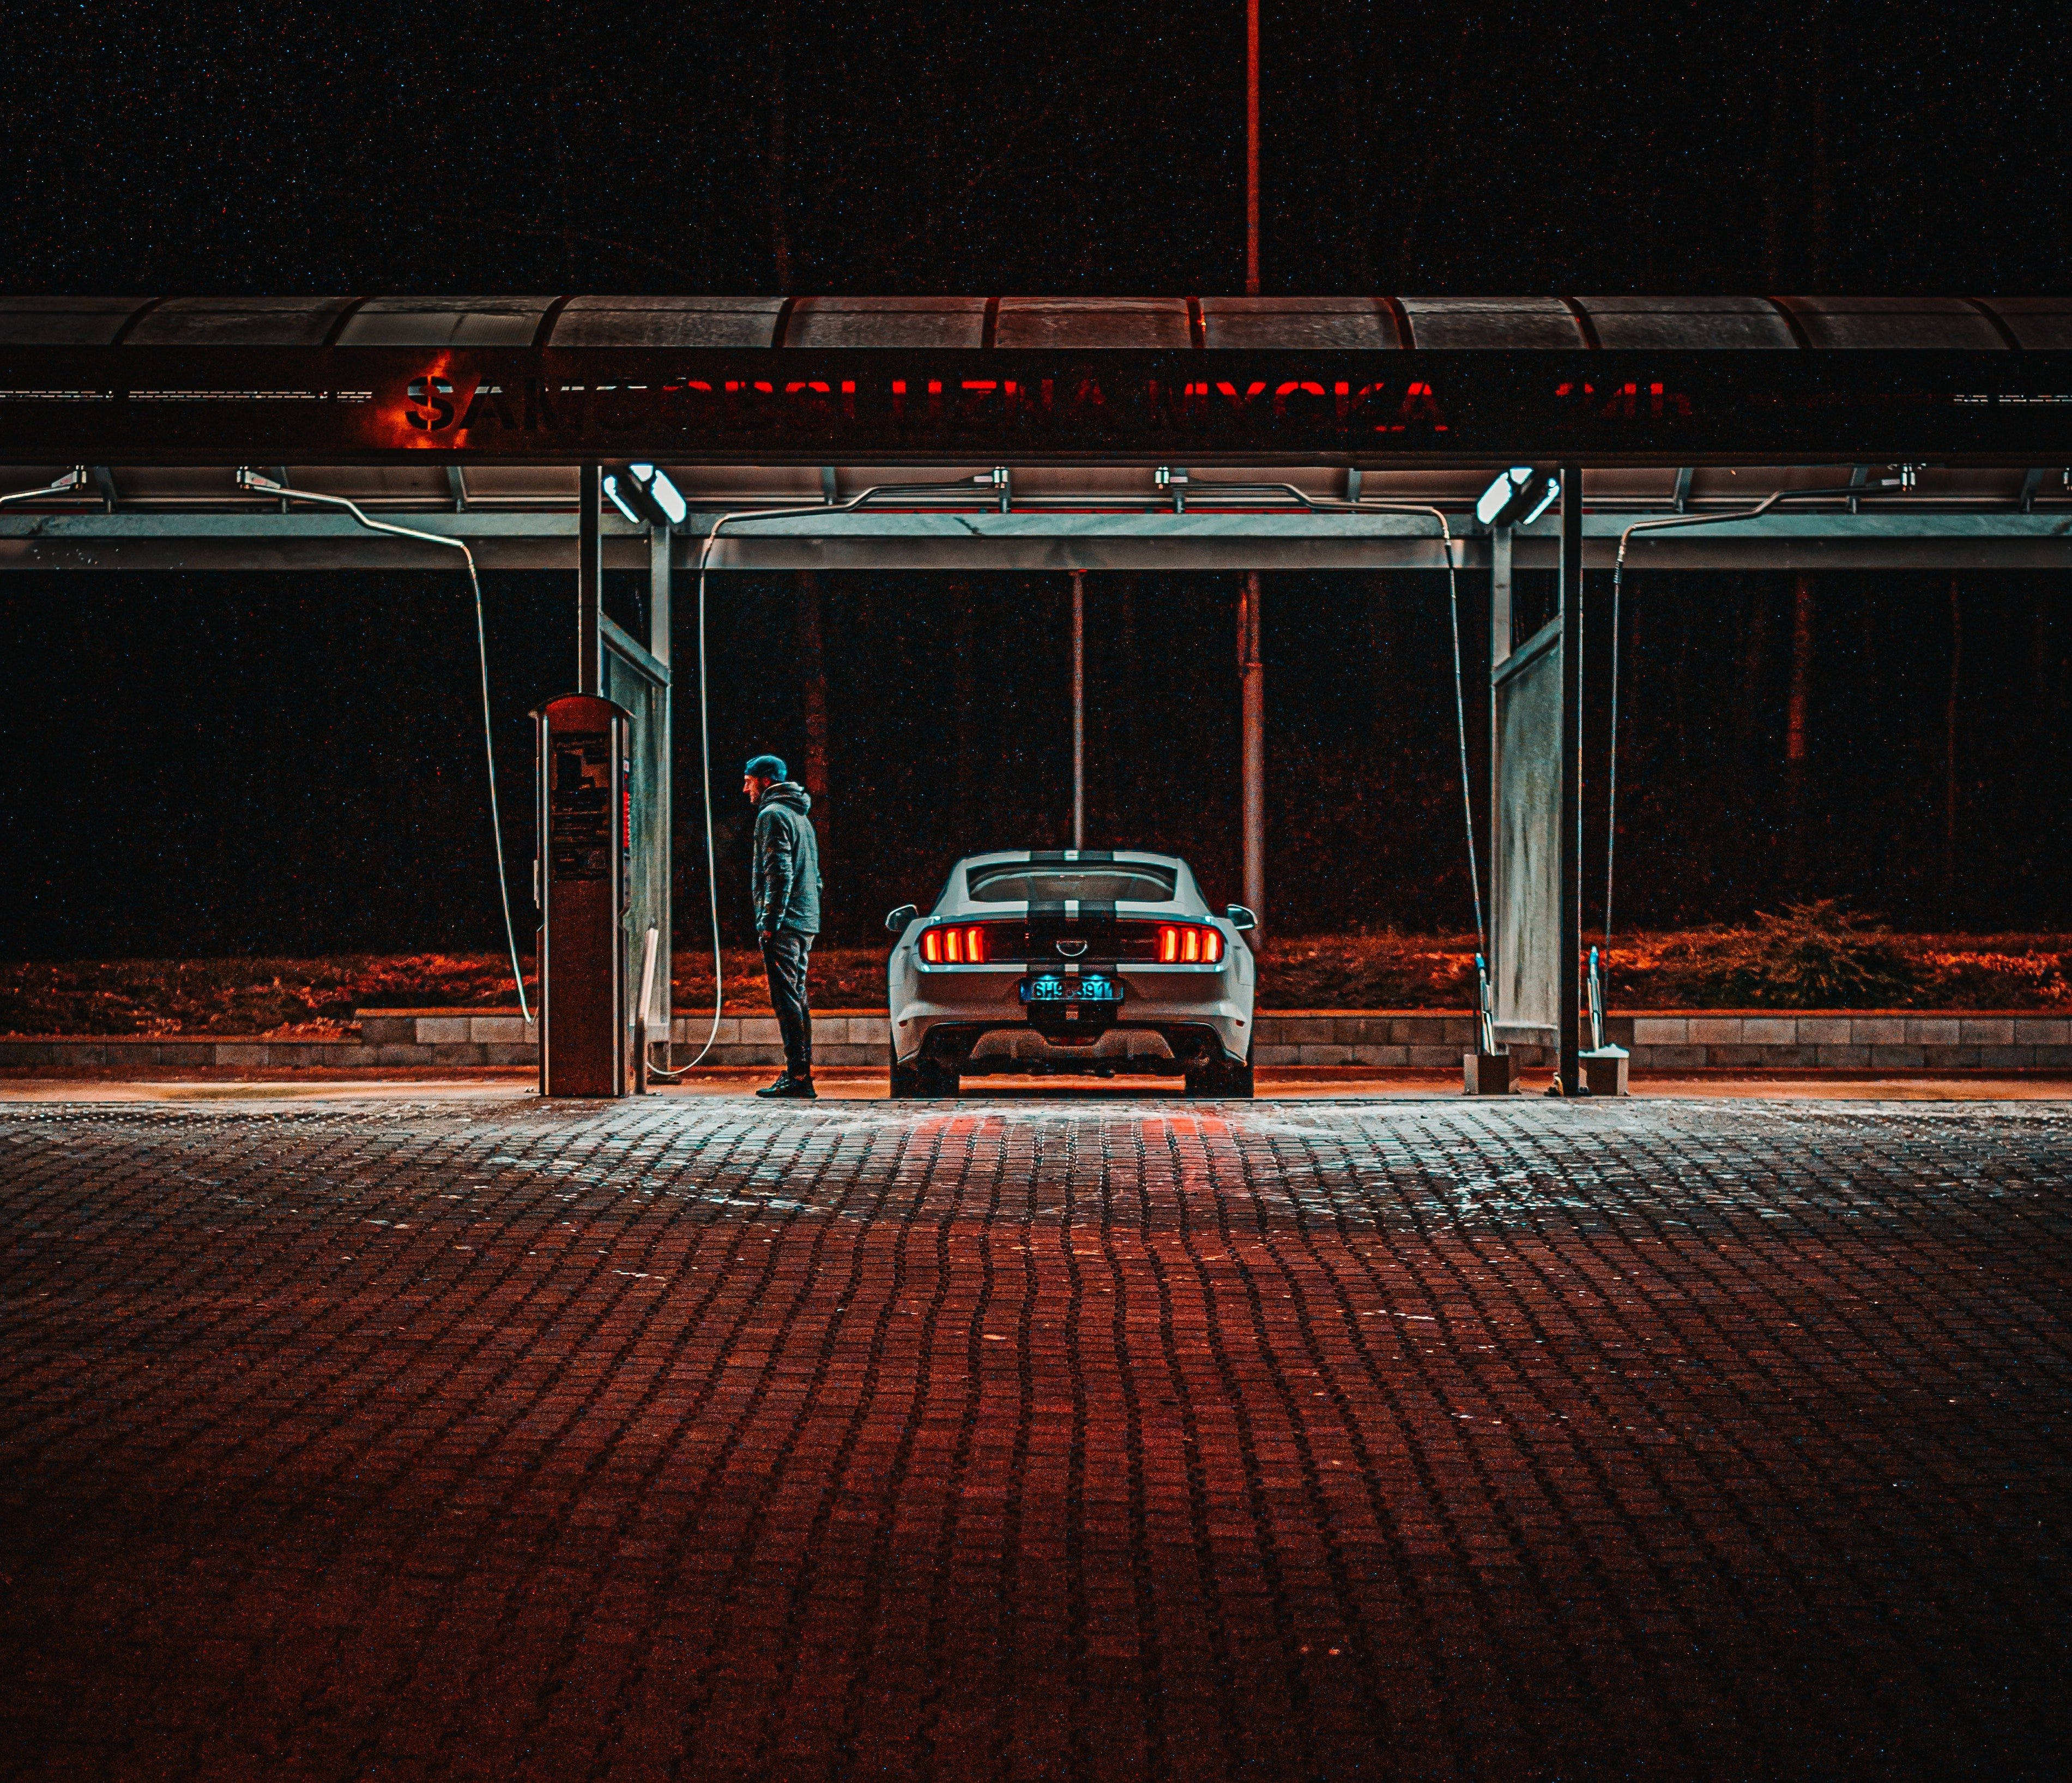 A man fills up his car with gas at a station | Photo: Pexels/Jan Kopřiva